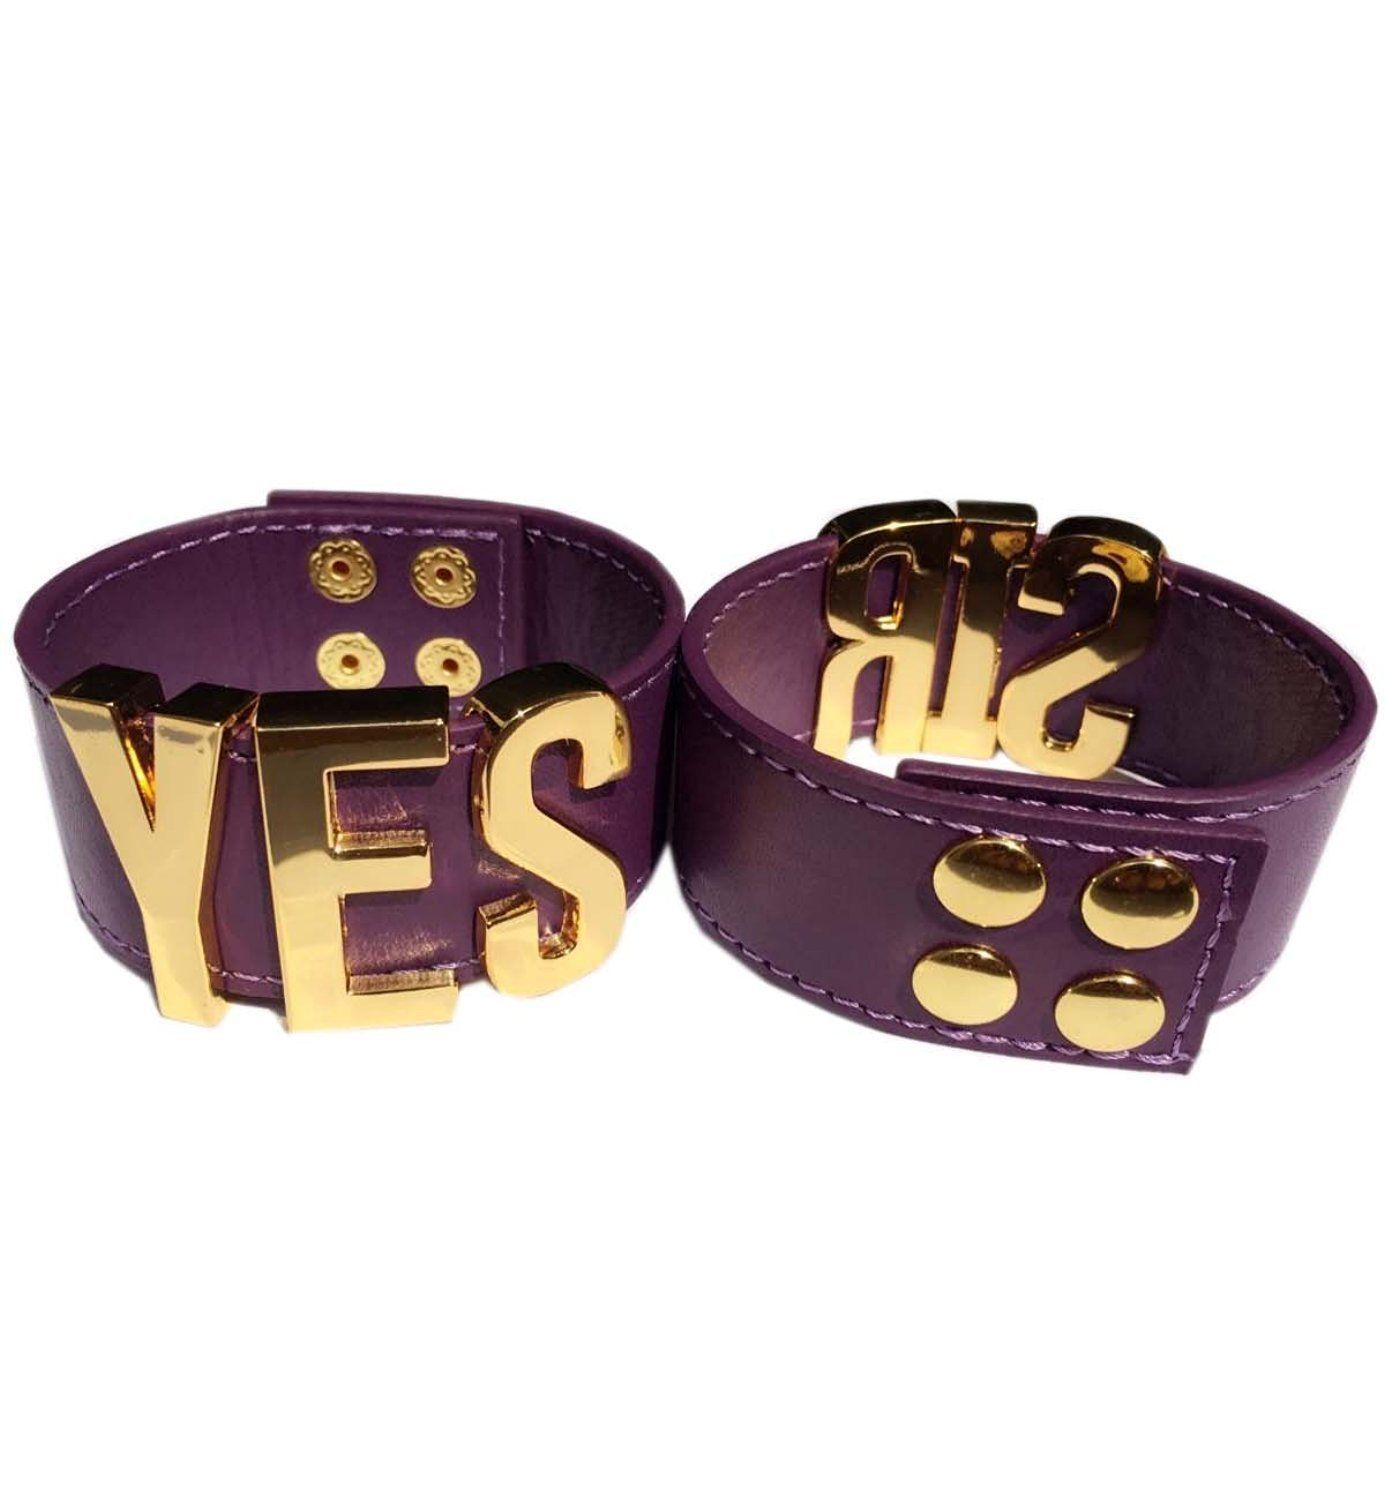 YES SIR Bracelets-Harley Quinn Suicide Squad Halloween Costume Cosplay Wristband